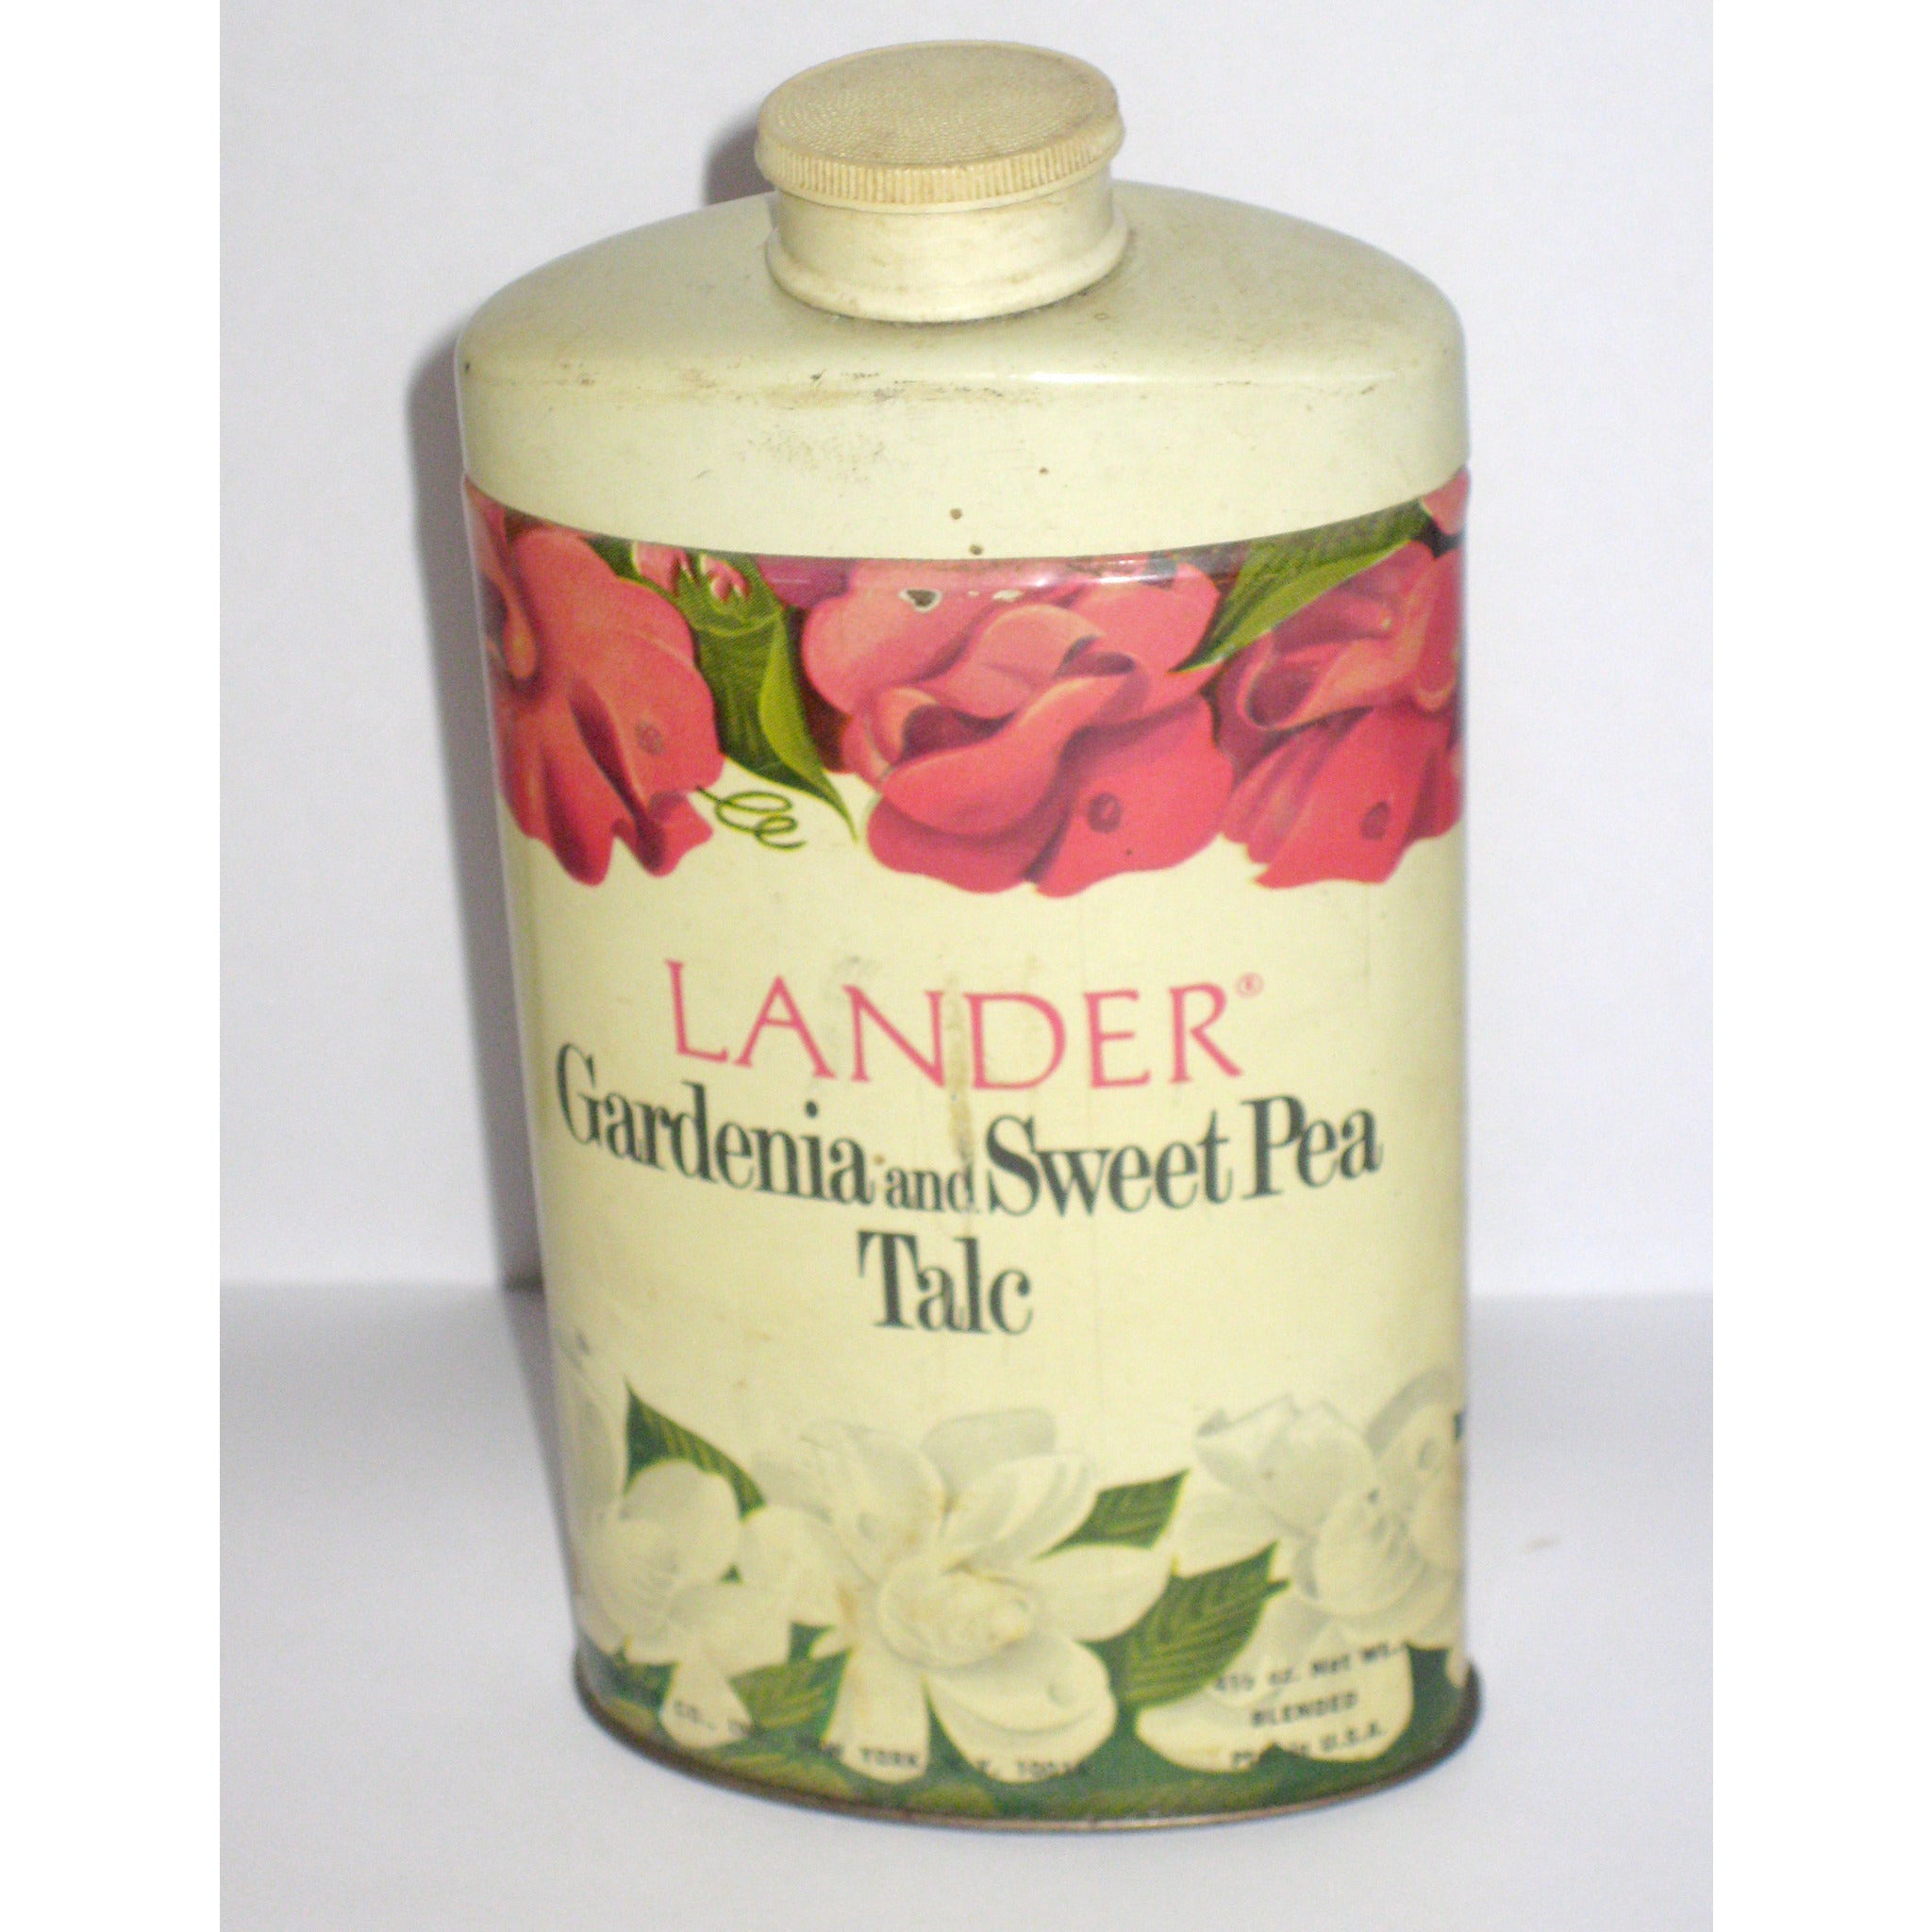 Vintage Gardenia and Sweet Pea Talc By Lander